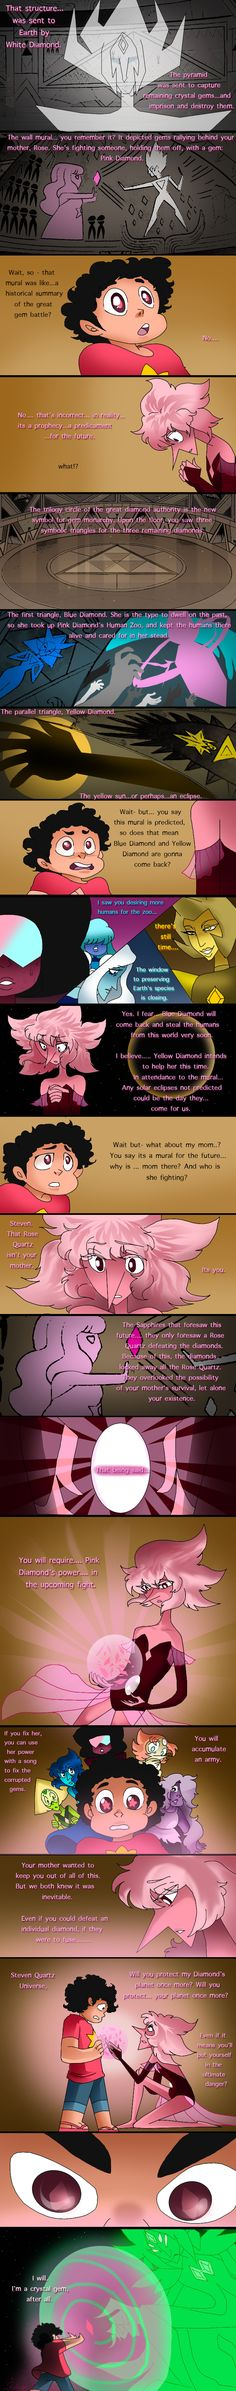 Next~ Oh Hey look what I got around to coloring a continuation of this comic: and a few theories: Pink Pearl / Lion, Pink Diamond, and Rose Quartz (C) Steven Universe&...